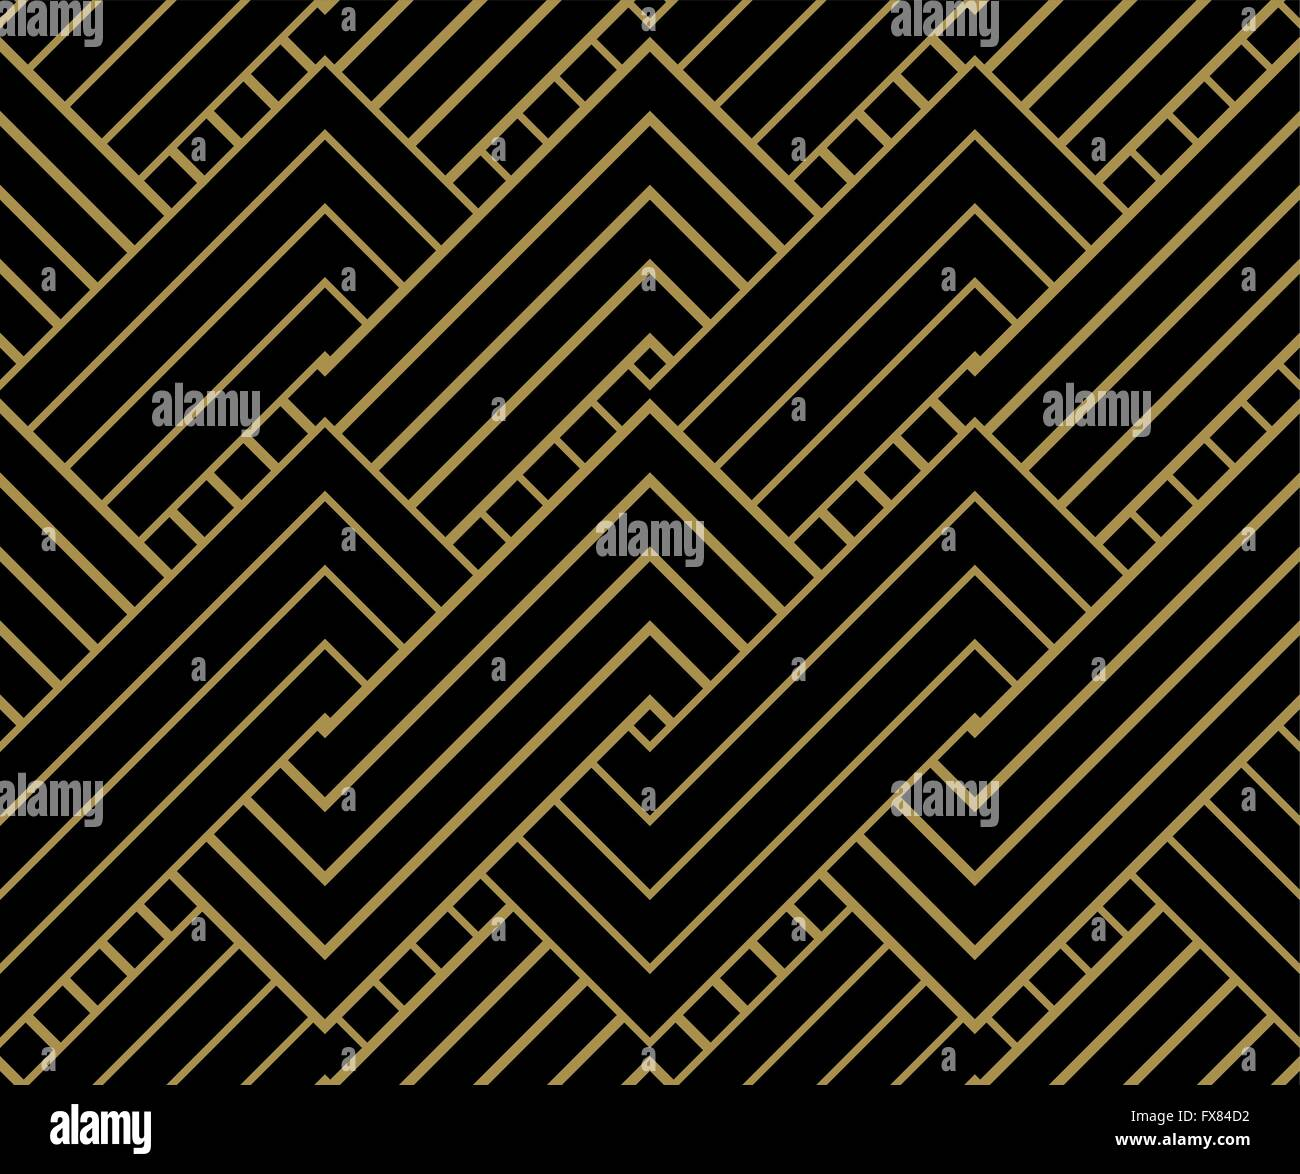 Geometric Gold Shapes Background Striped Gold On Black